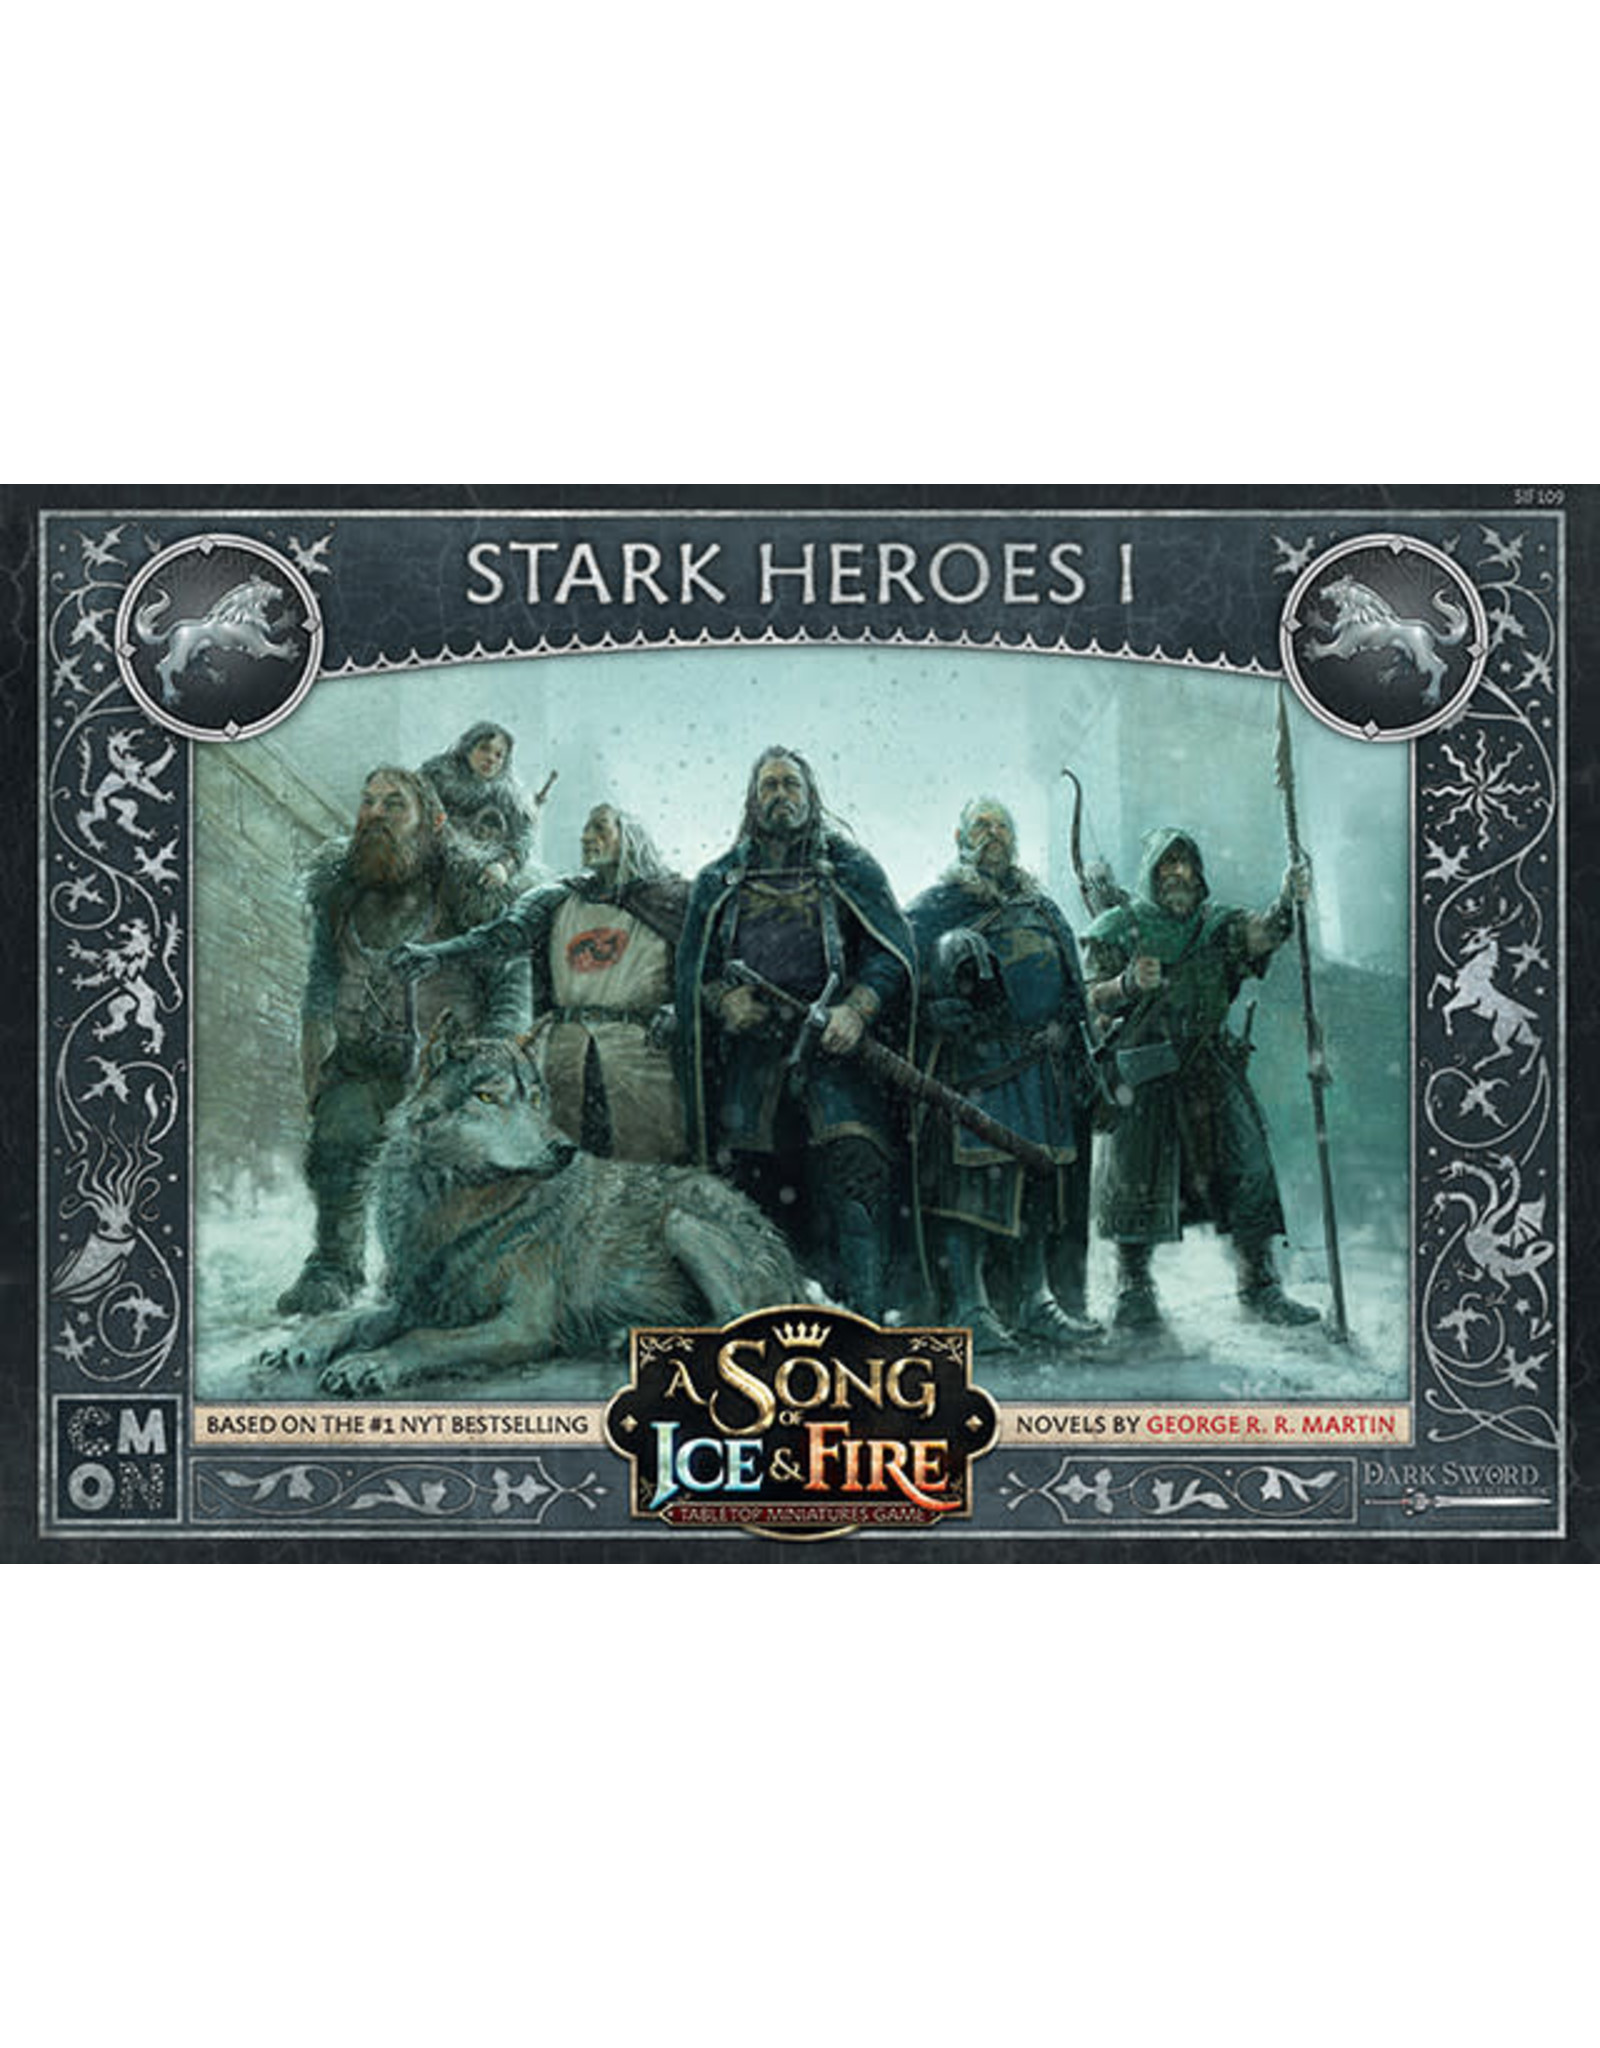 CMON A SONG OF ICE & FIRE: STARK HEROES 1